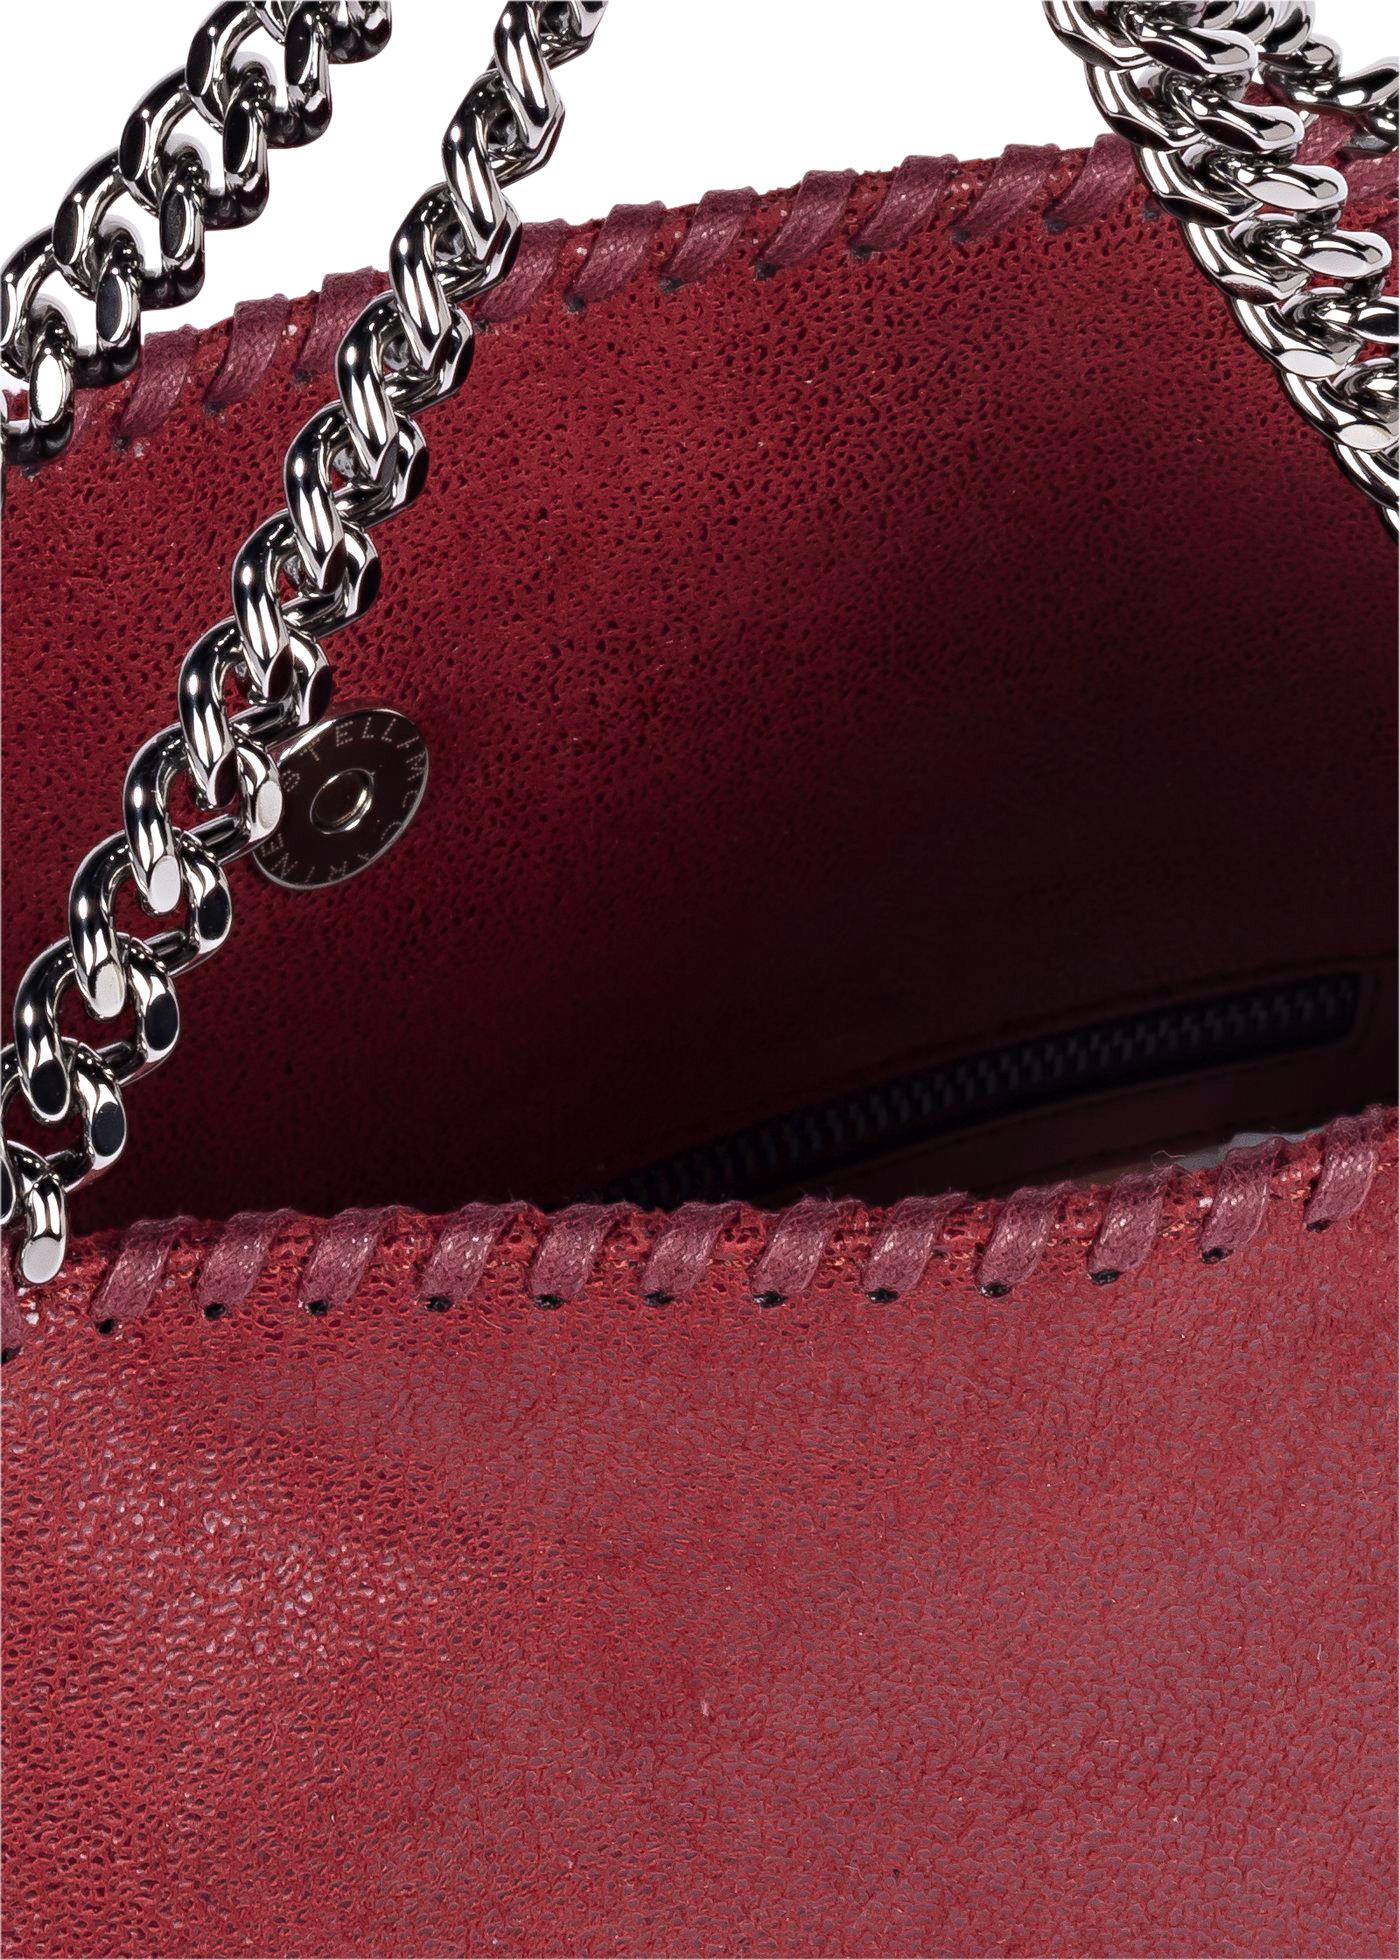 3 Chain Falabella Shaggy Deer image number 3